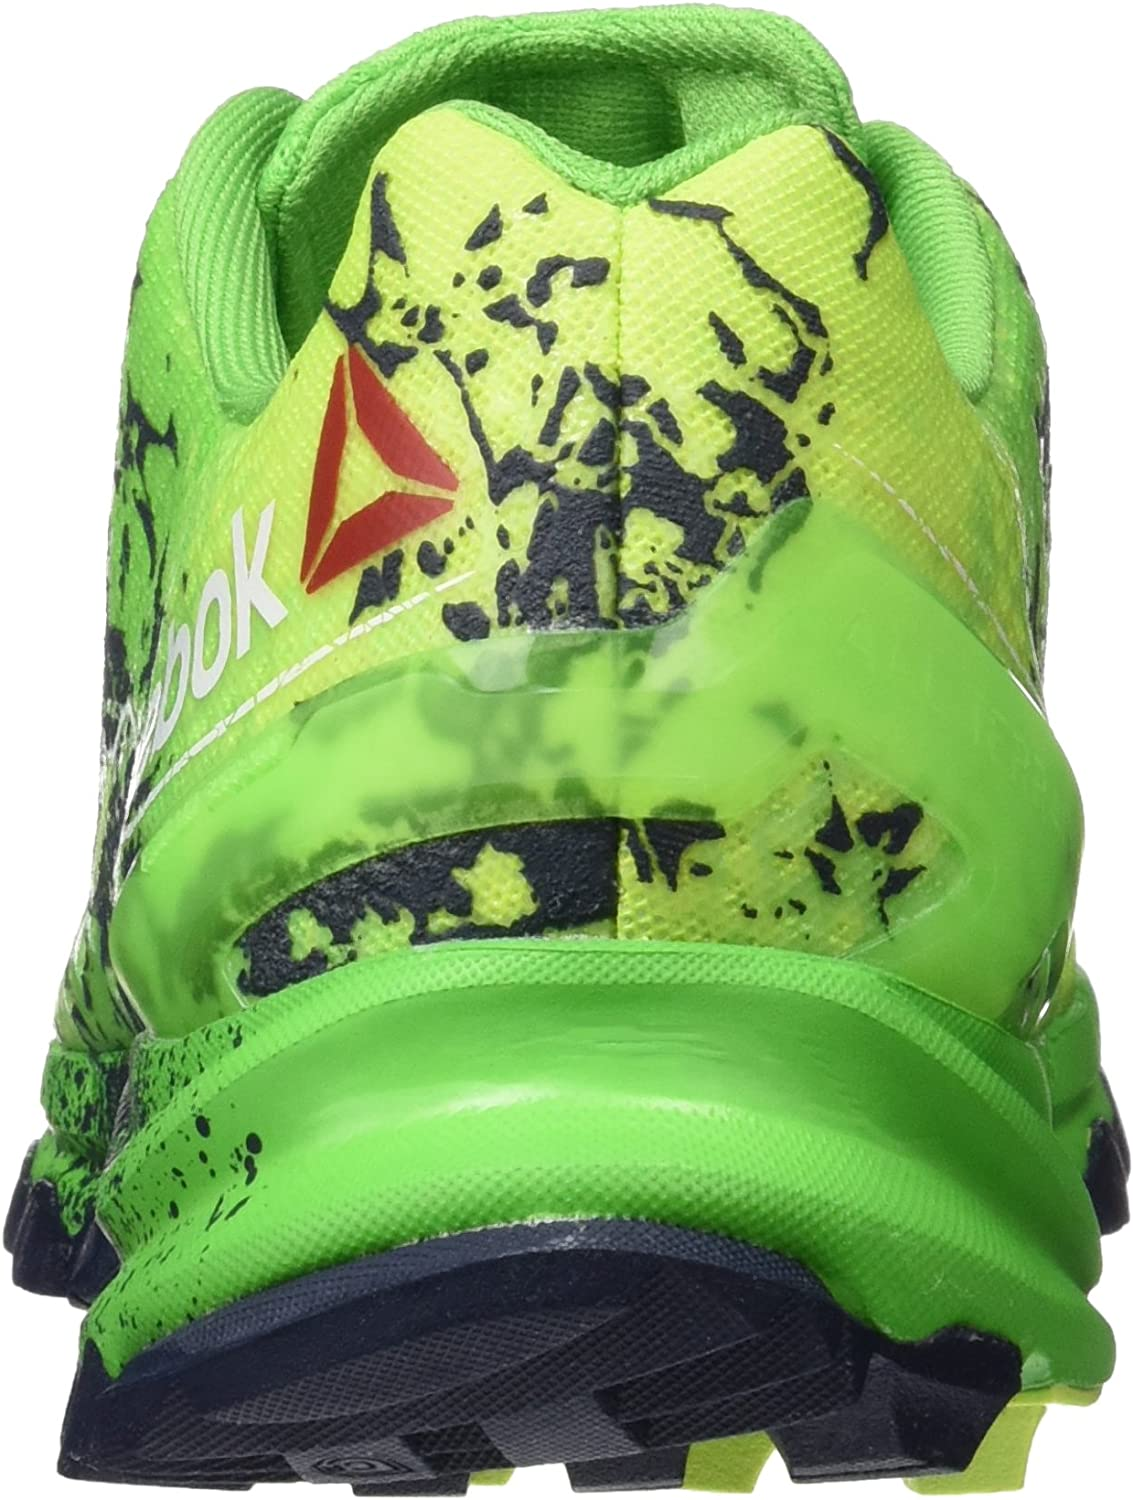 Reebok reebok all terrain thrill scarpe spartan race giallo